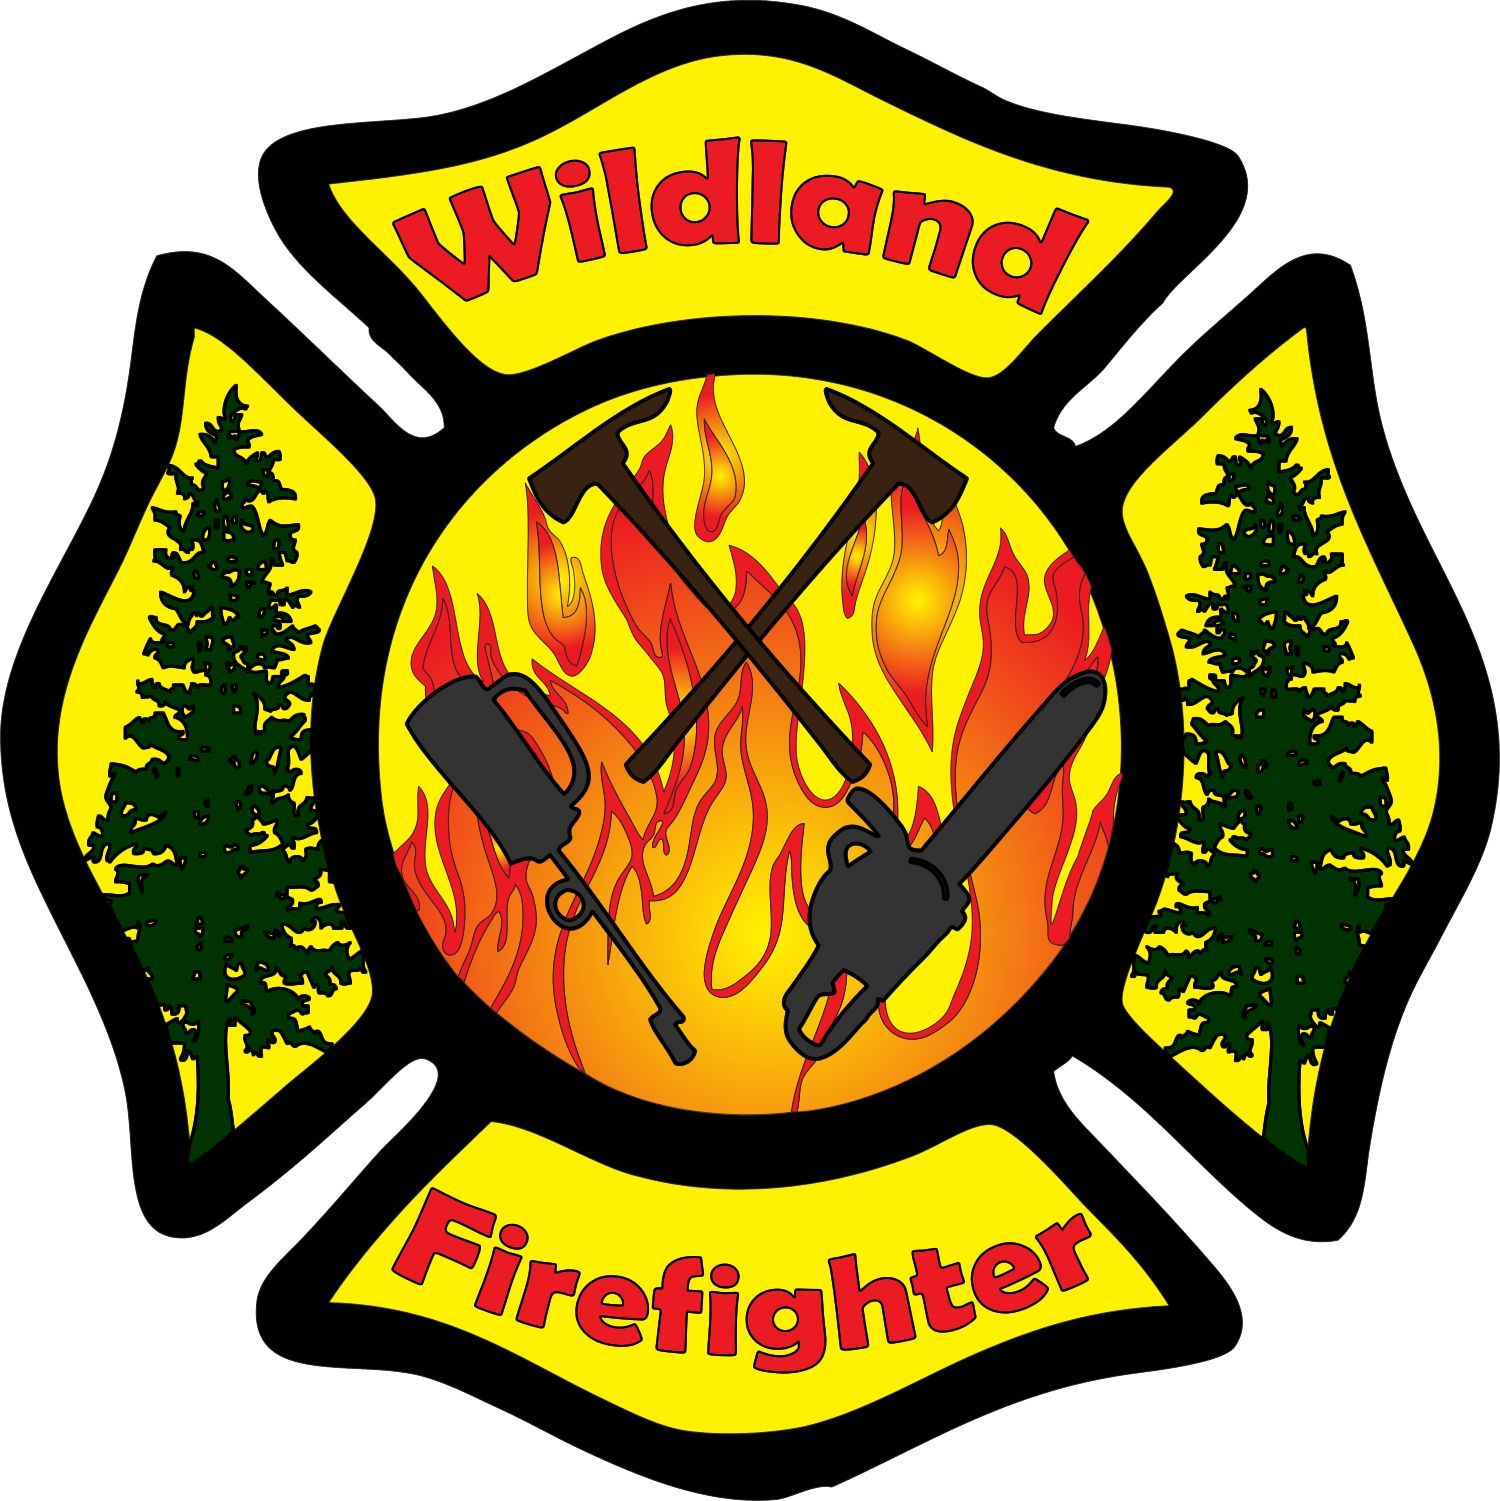 Full color wildland firefighter maltese cross decal made from 3mil permanent adhesive vinyl designed to withstand the elements up to 5 years